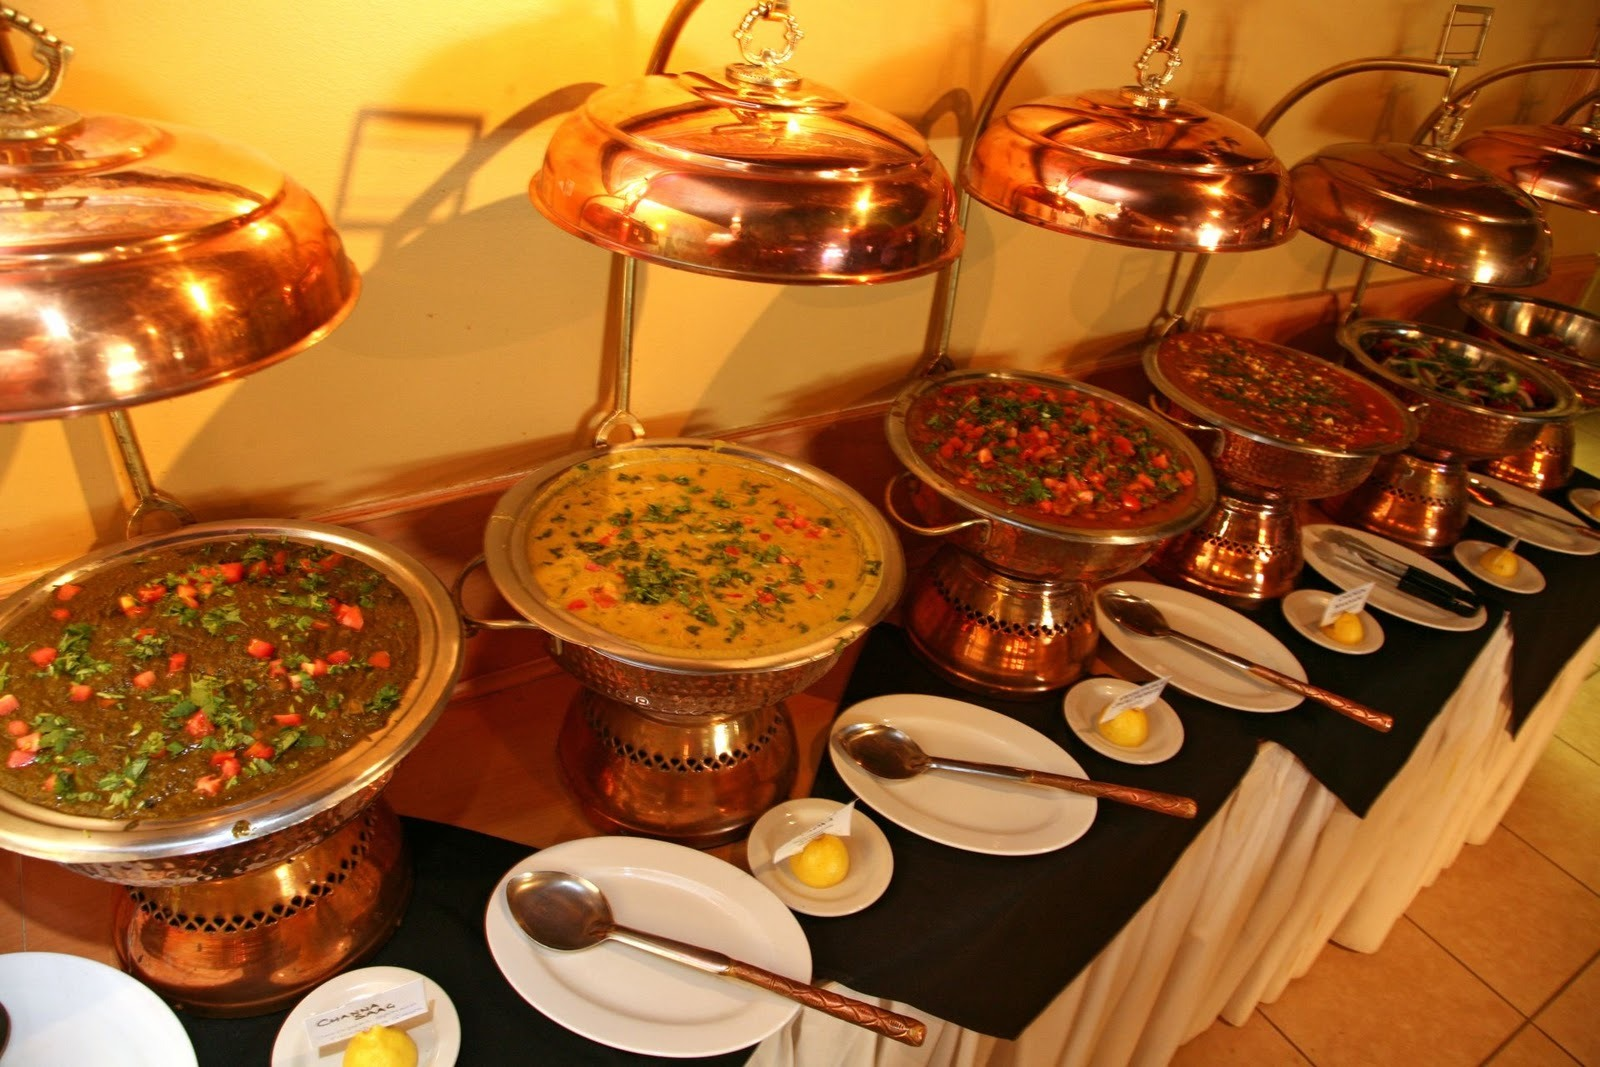 Catering Services in Patia, Bhubaneswar   ID: 9044269848